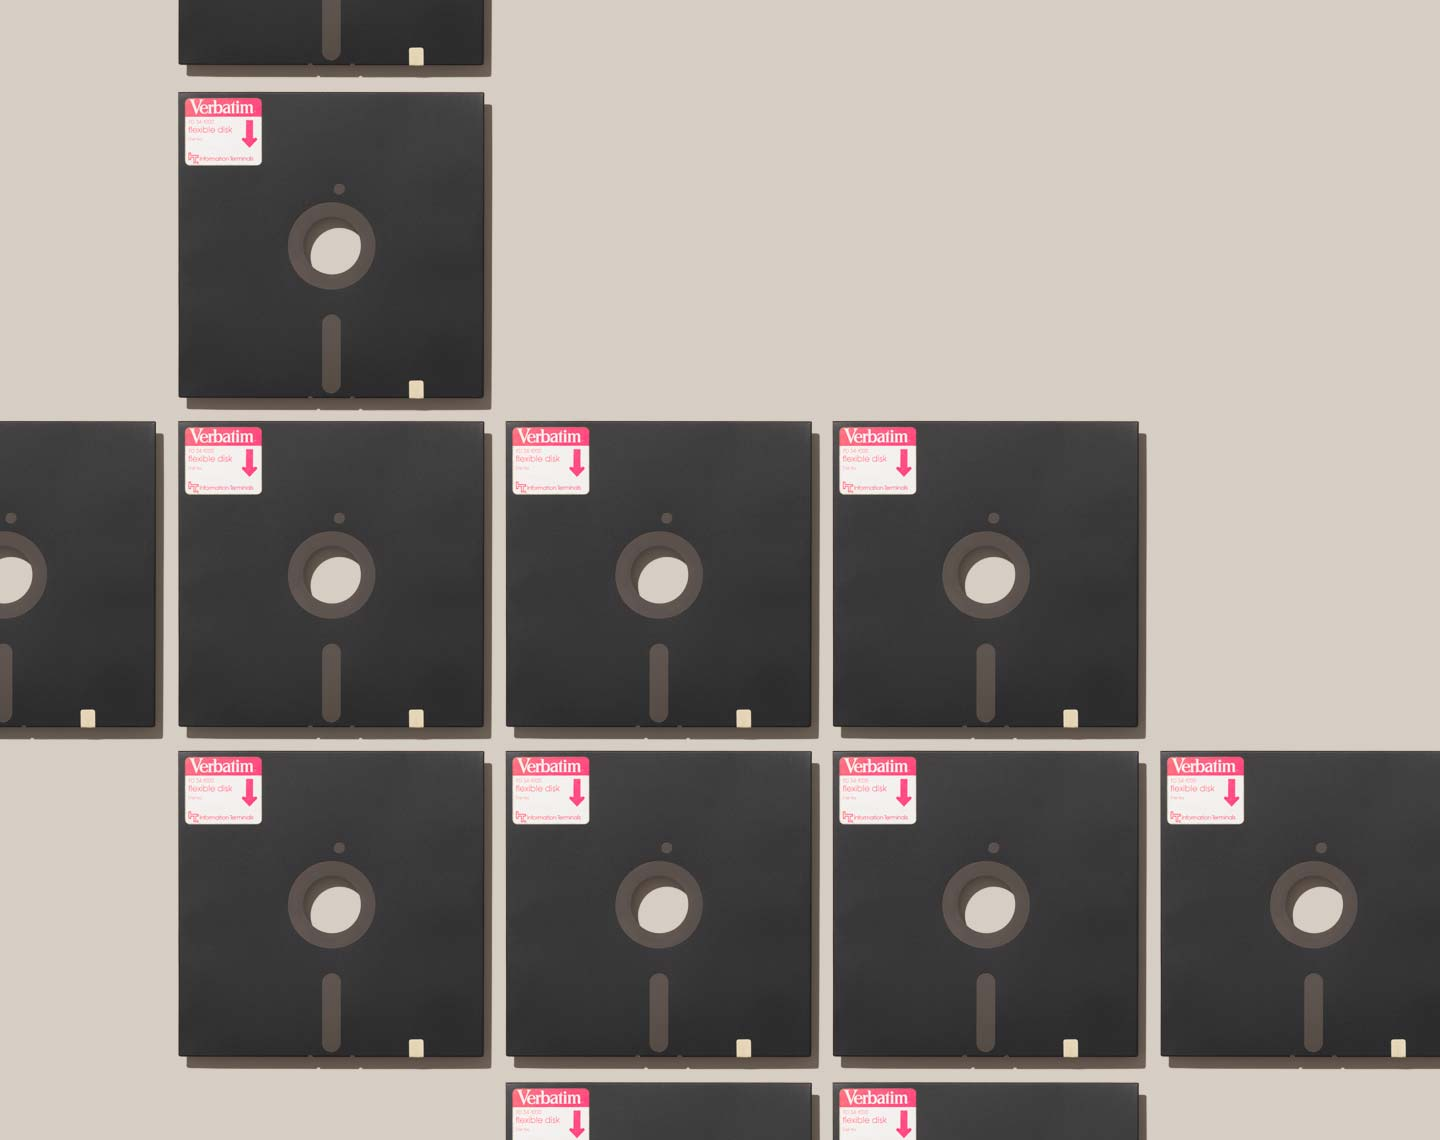 5 1/4 inch floppy disk arranged neatly